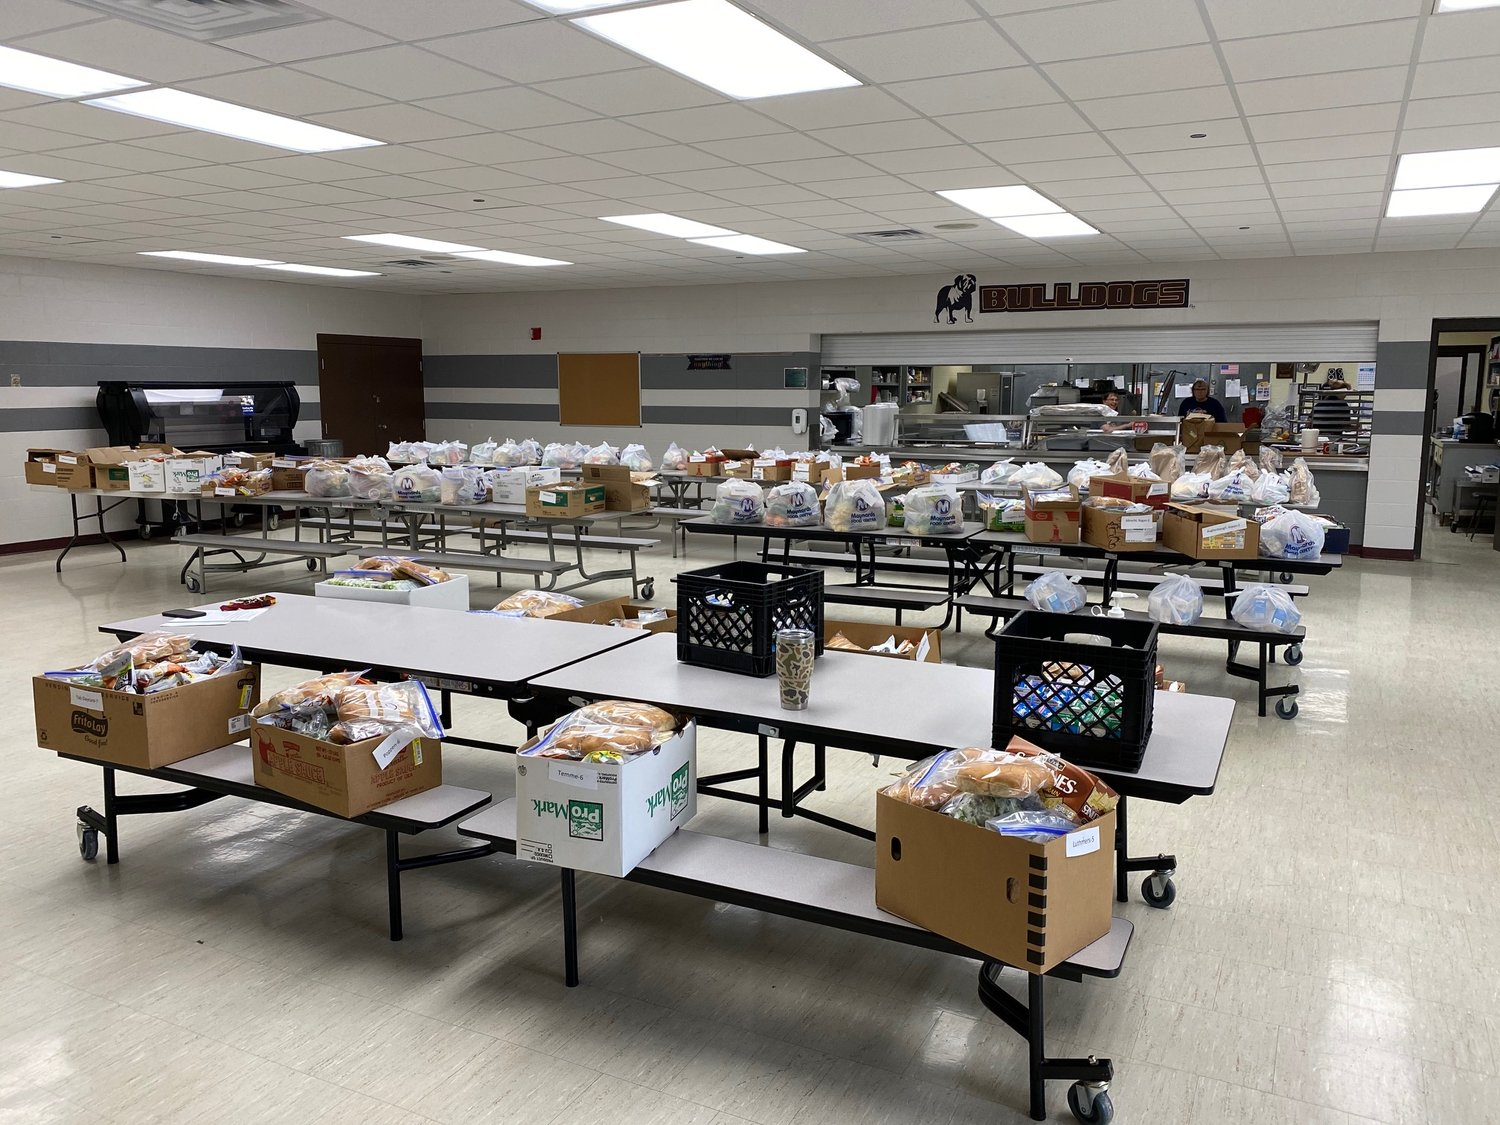 School lunches are prepared for weekly pick-up in the De Smet School District. Families and daycares picked up the meals in a drive-through model where school staff brought the food to the vehicles.